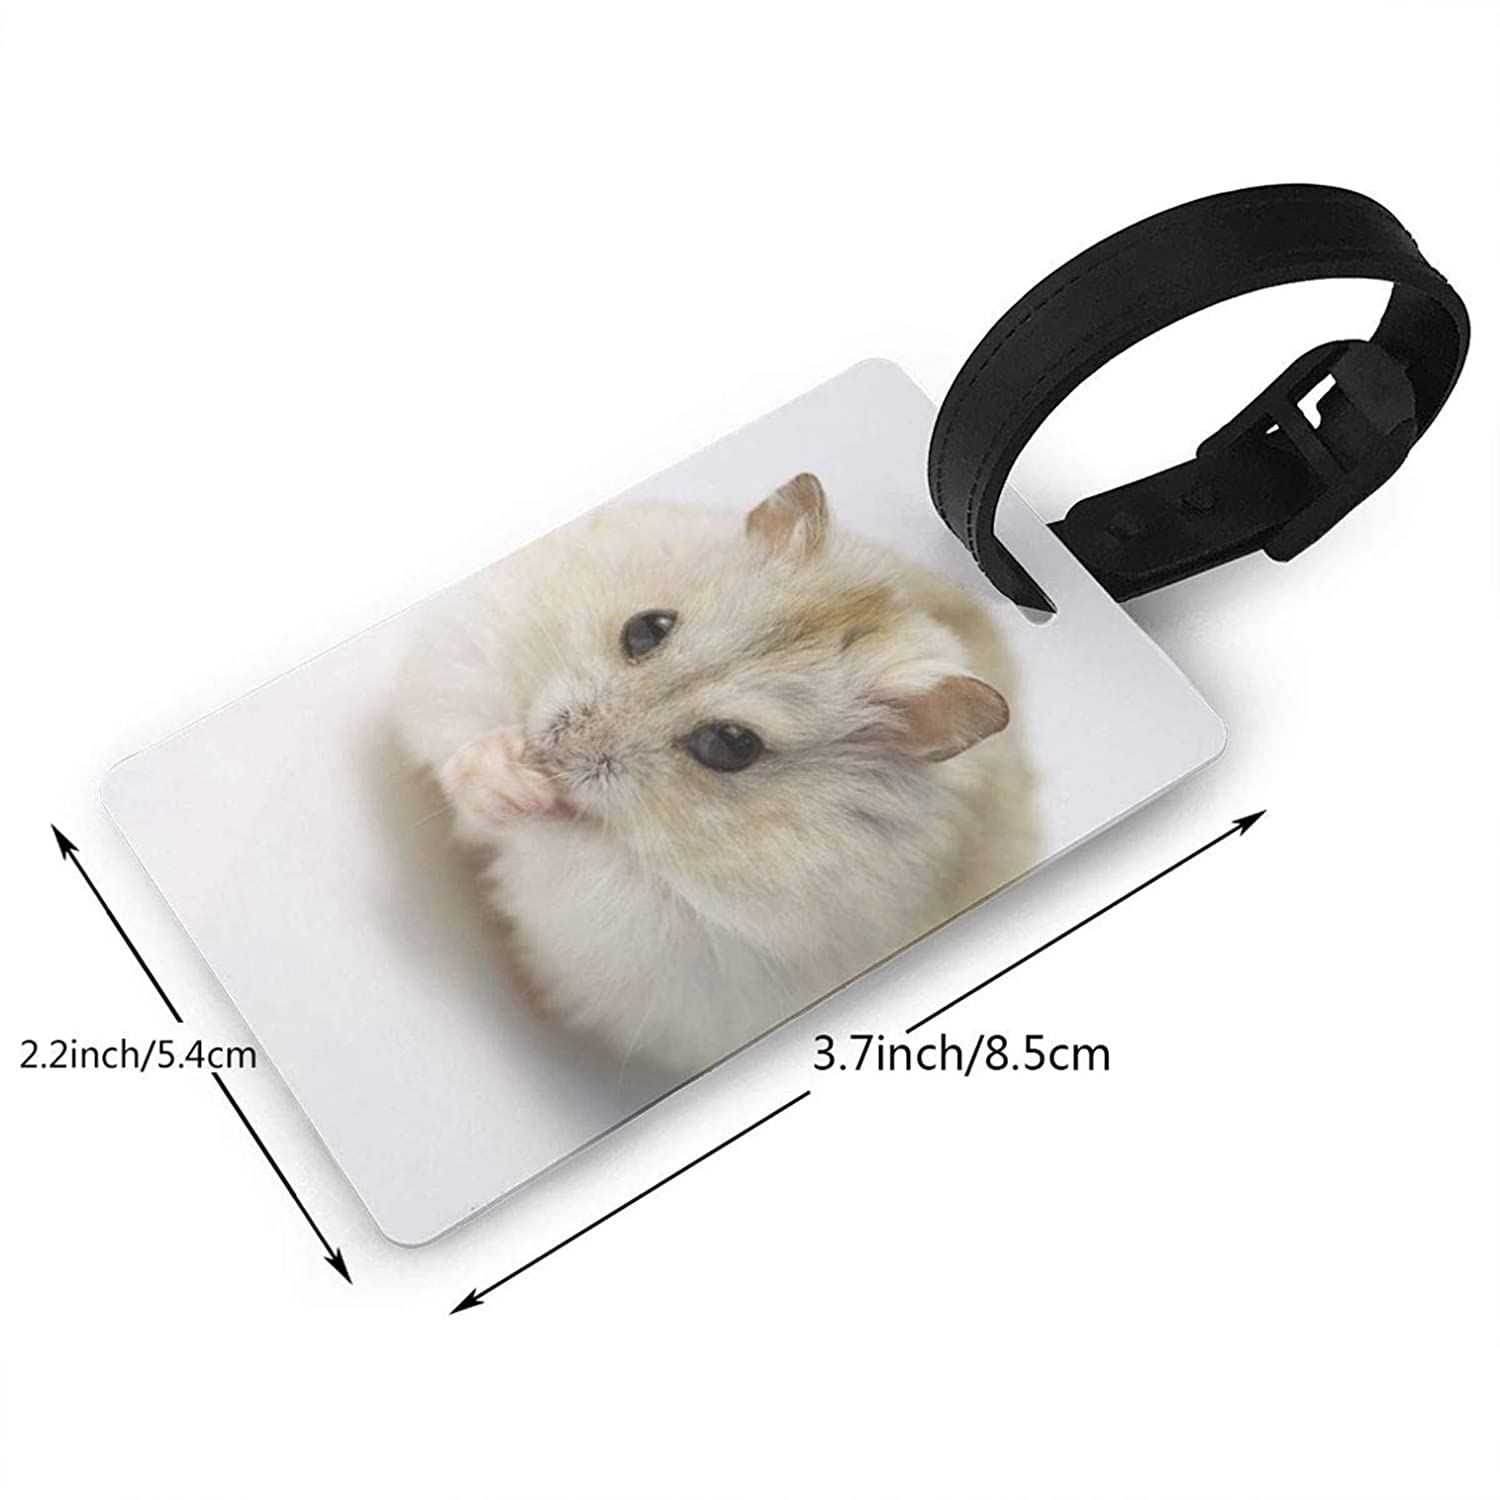 Hamster,Travel ID Bag Tag for Suitcase,Printed,Flexible PVC,Travel ID Identification for Bags Consignment Card